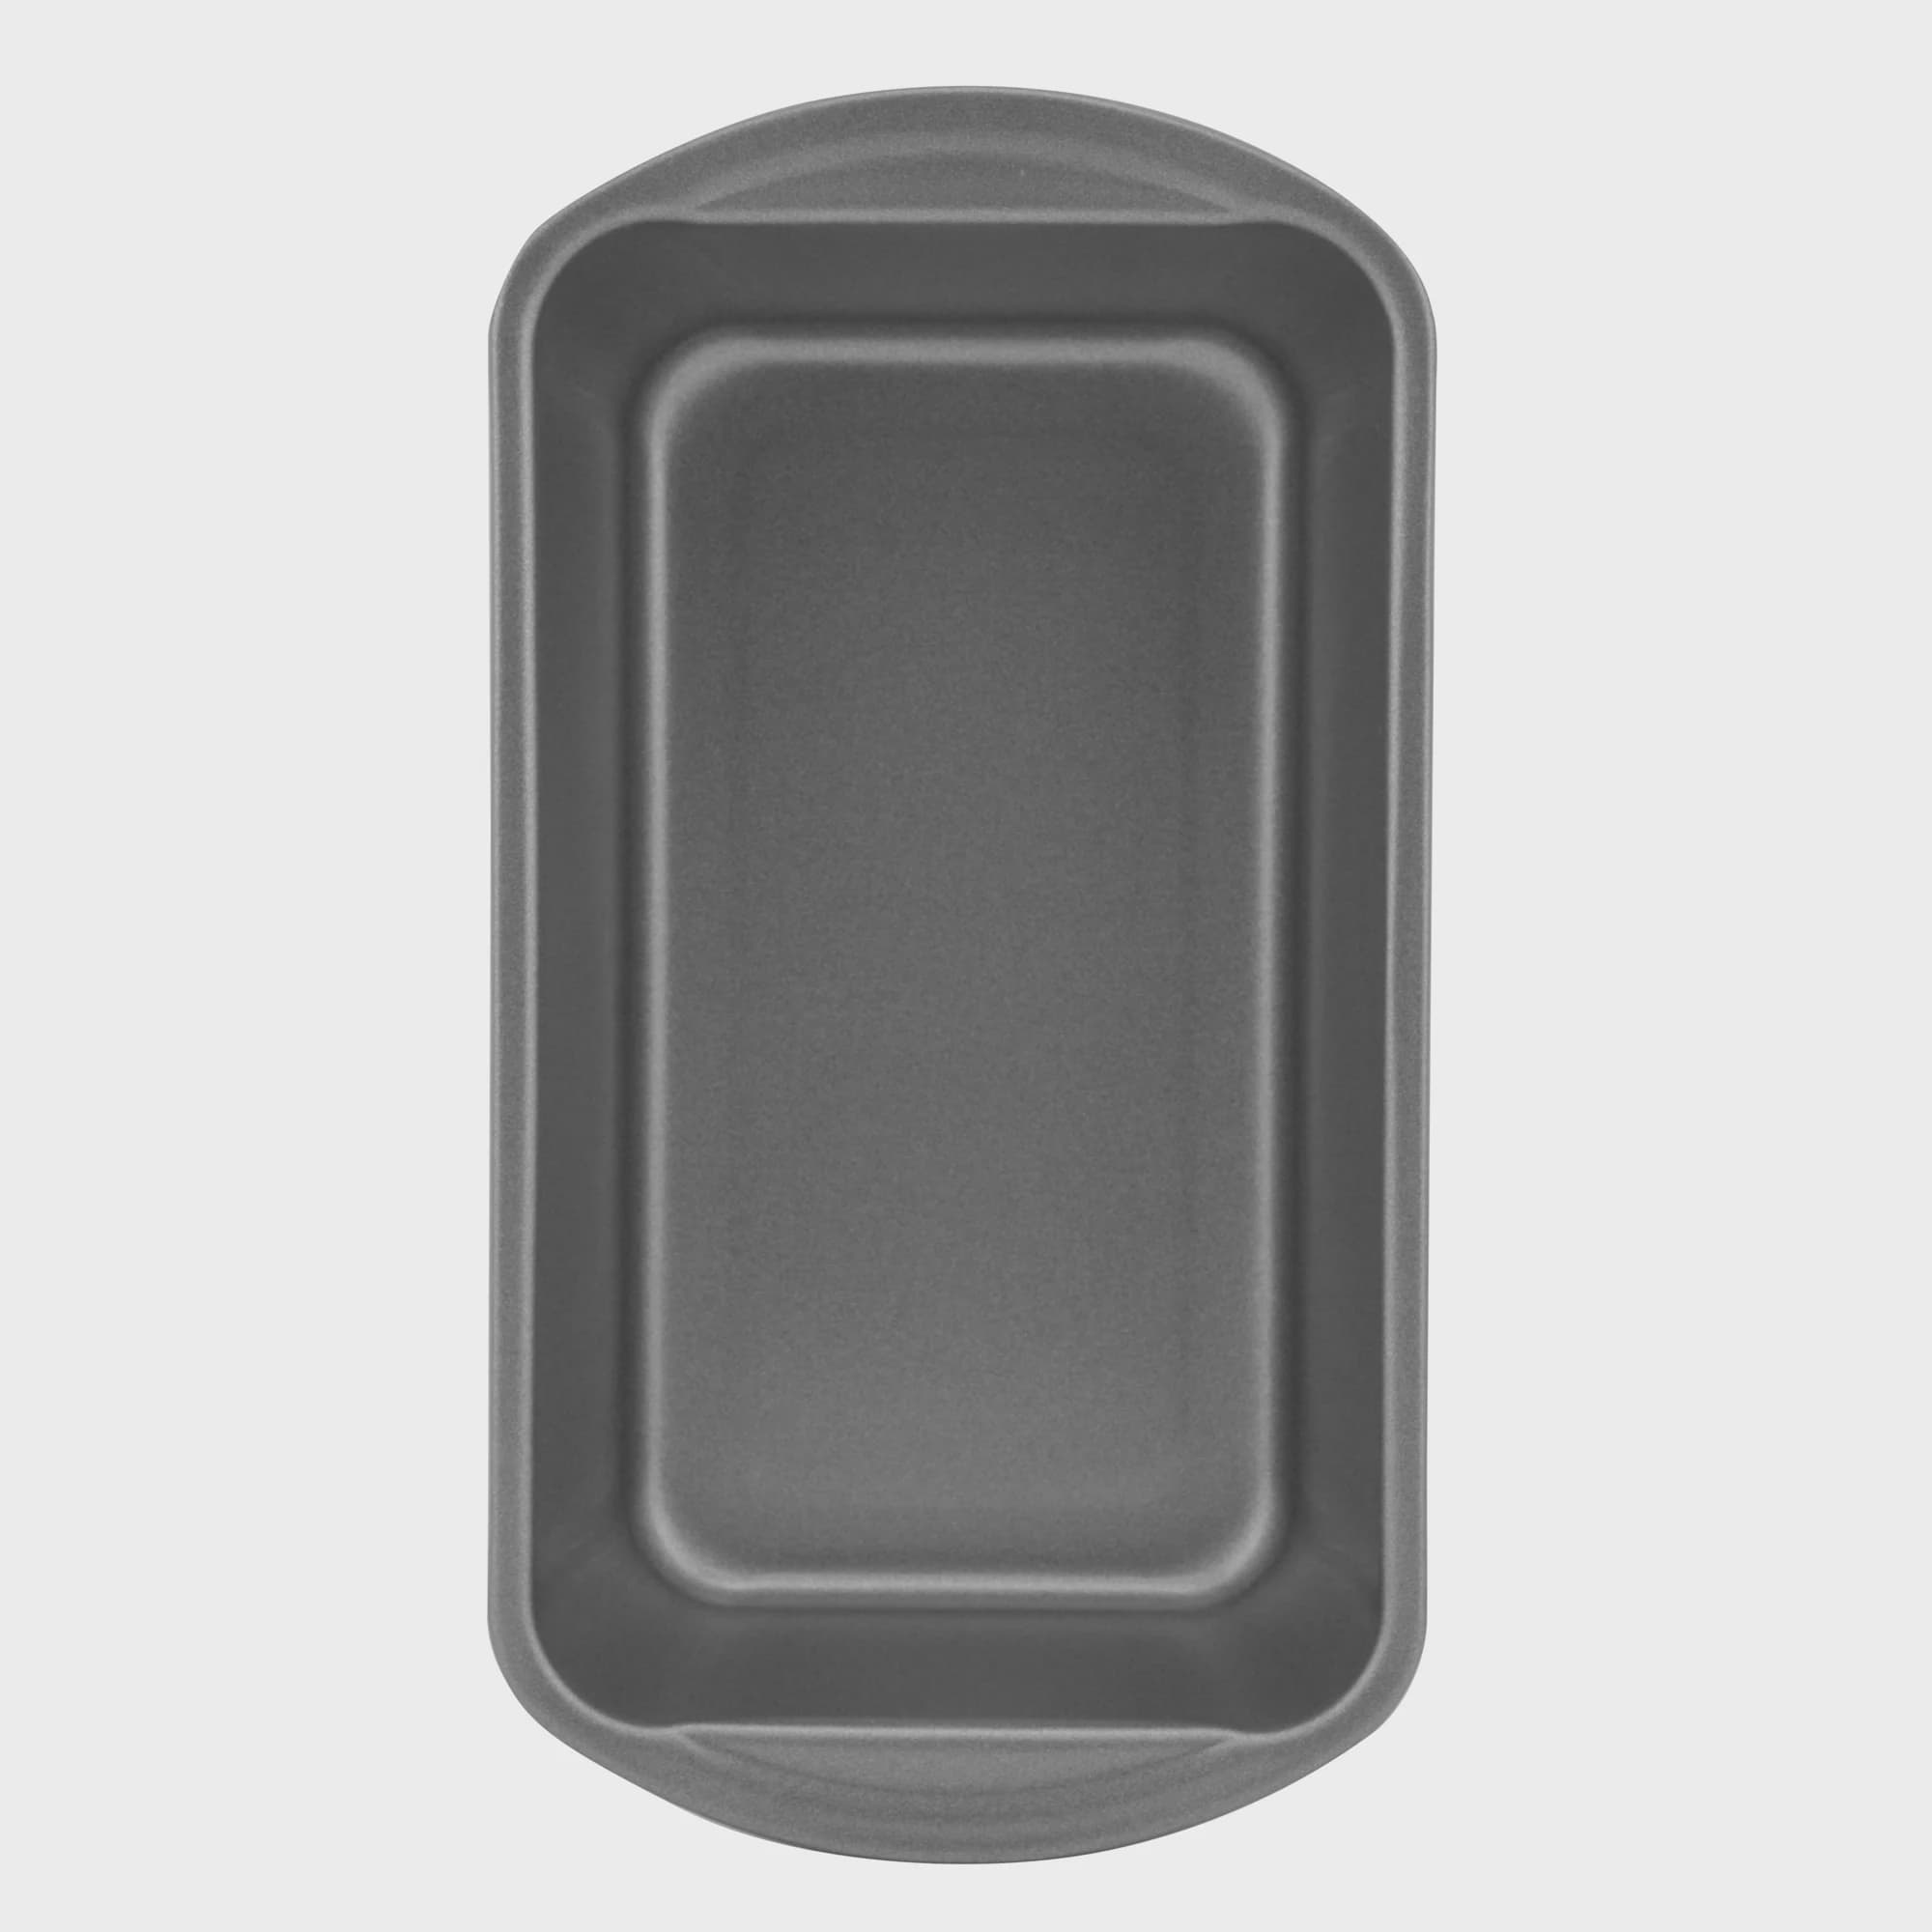 """Mainstays Nonstick 9"""" x 5"""" x 2.7"""" Large Loaf Pan, Meatloaf and Bread Pan, Gray"""